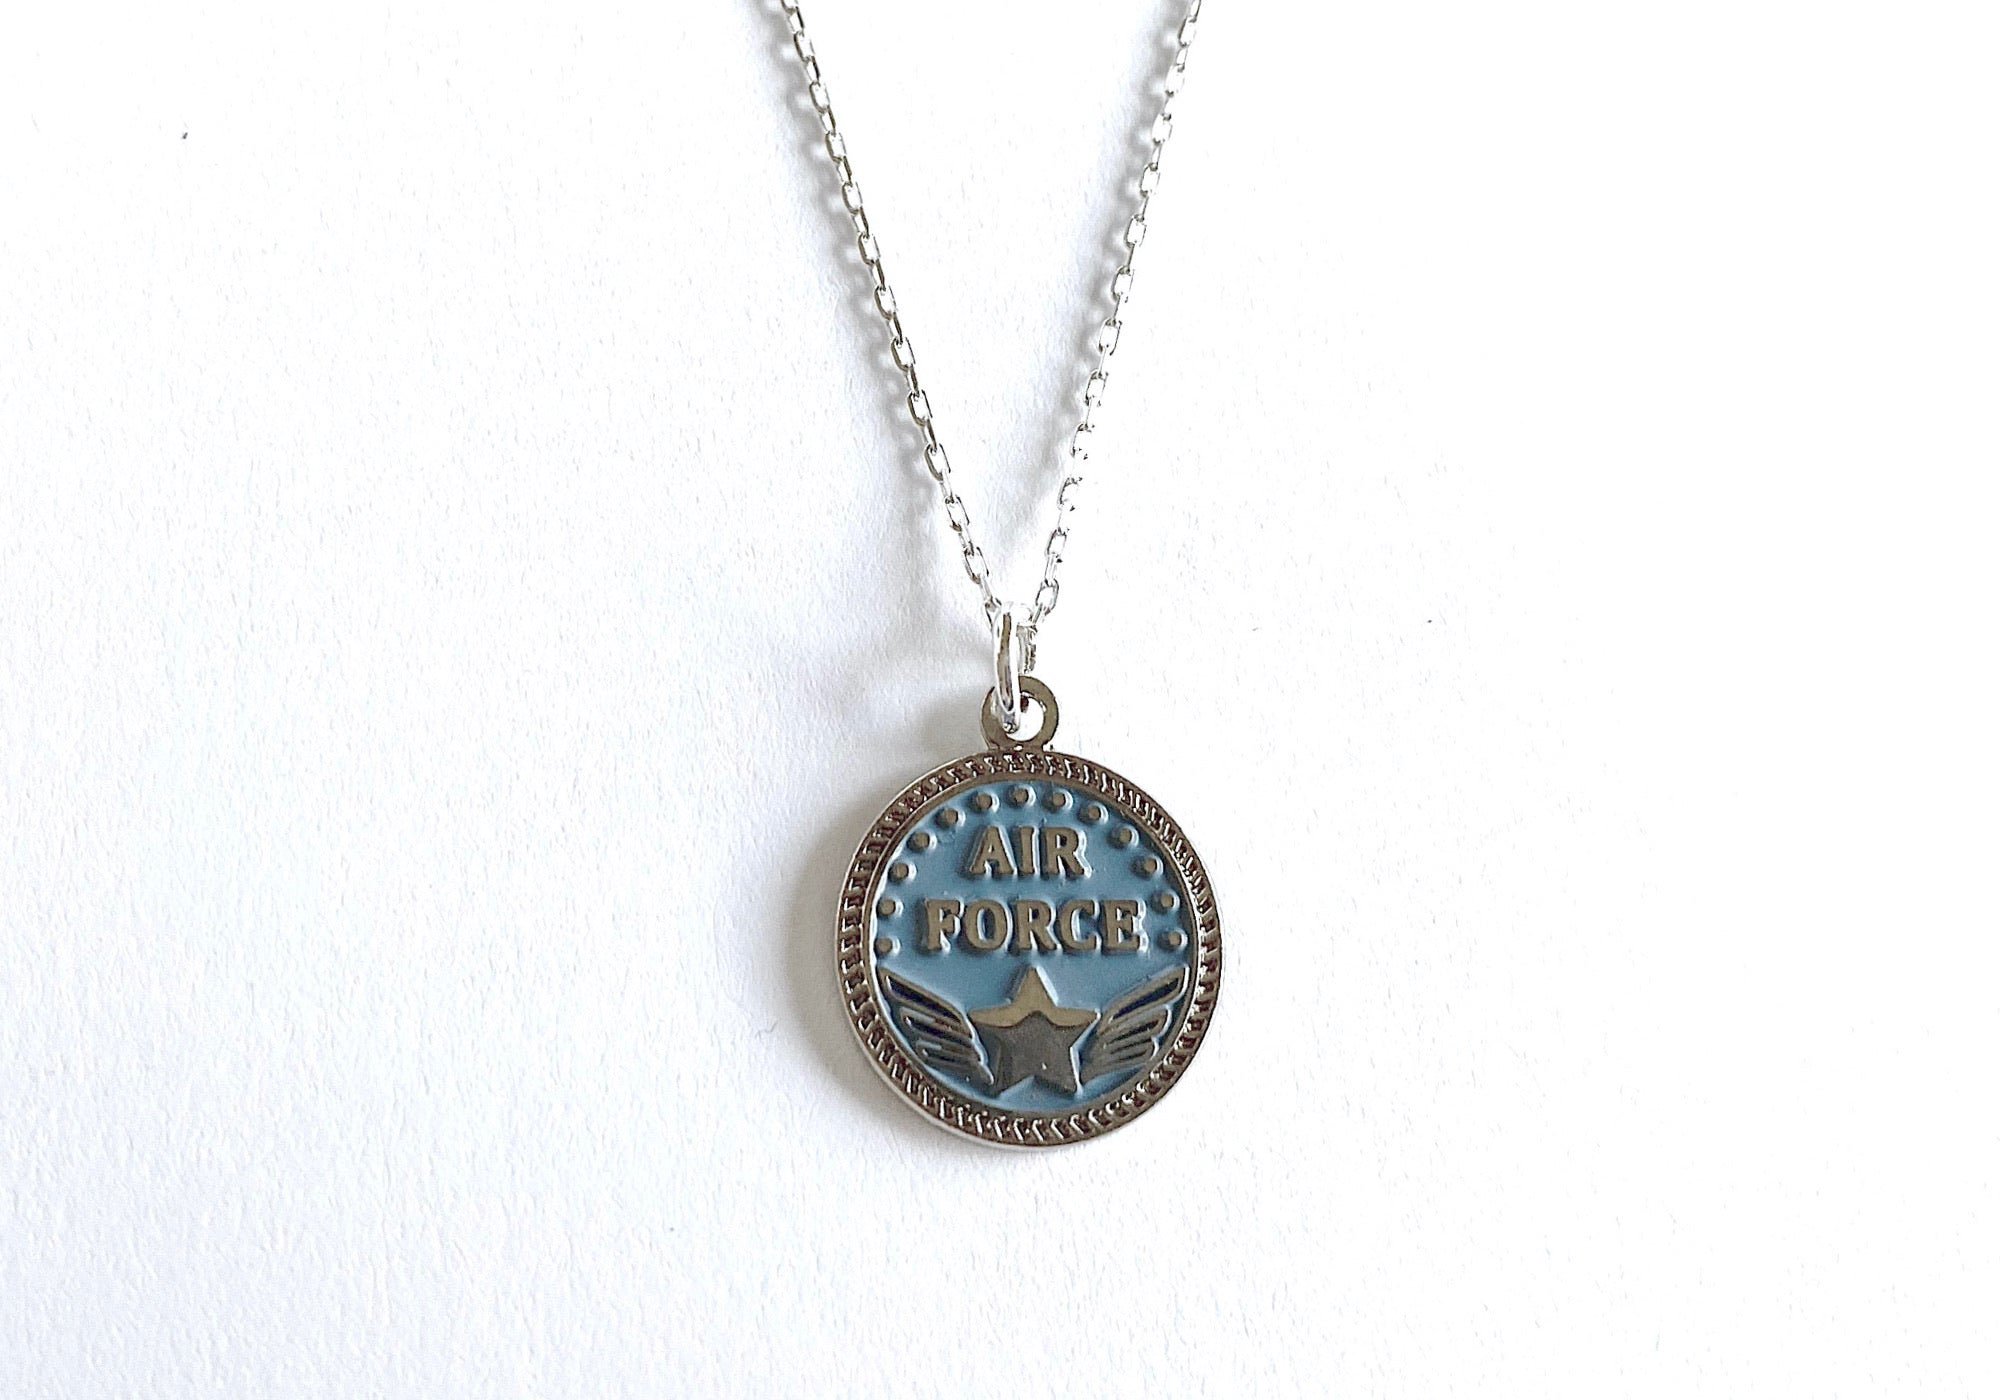 Air Force Charm Necklace